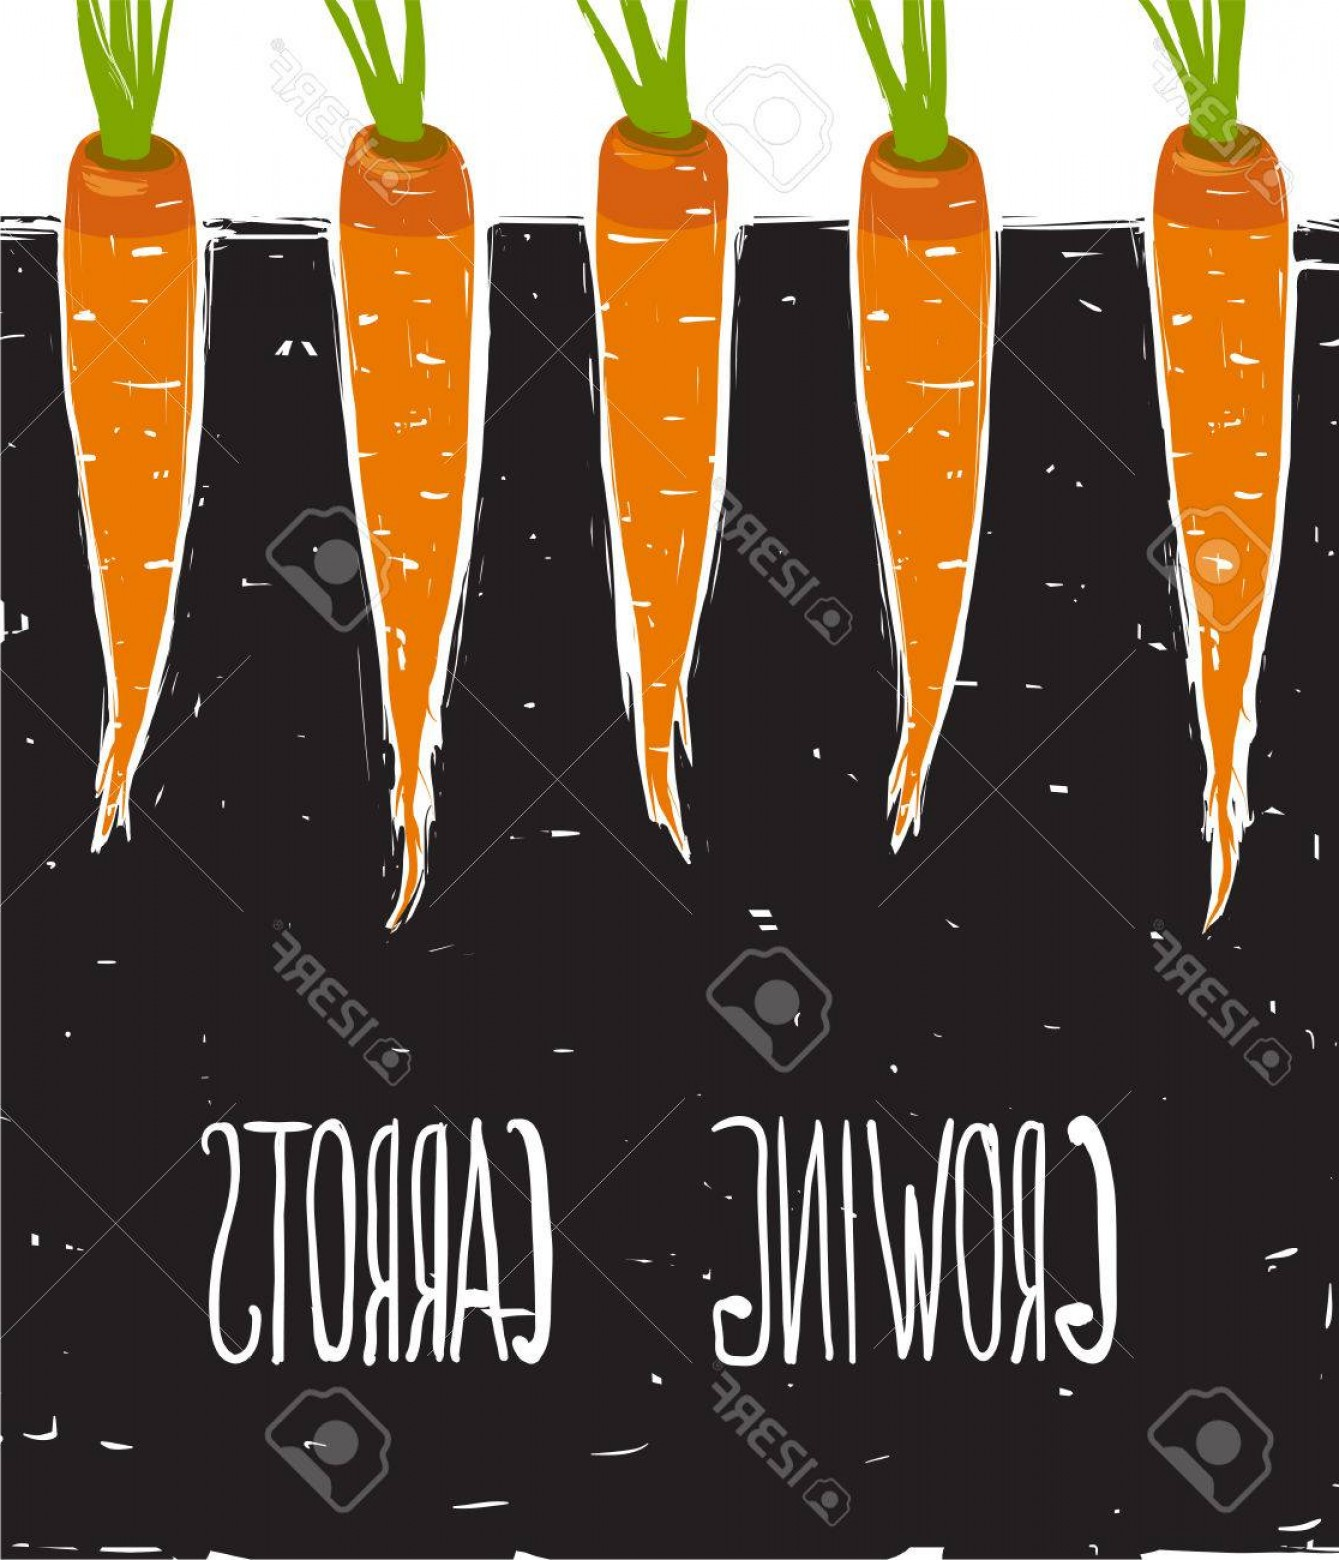 Scratch Y Drawing Vector: Photostock Vector Growing Carrots Scratchy Drawing And Lettering Bed Of Carrots Scribble Illustration Vector Eps